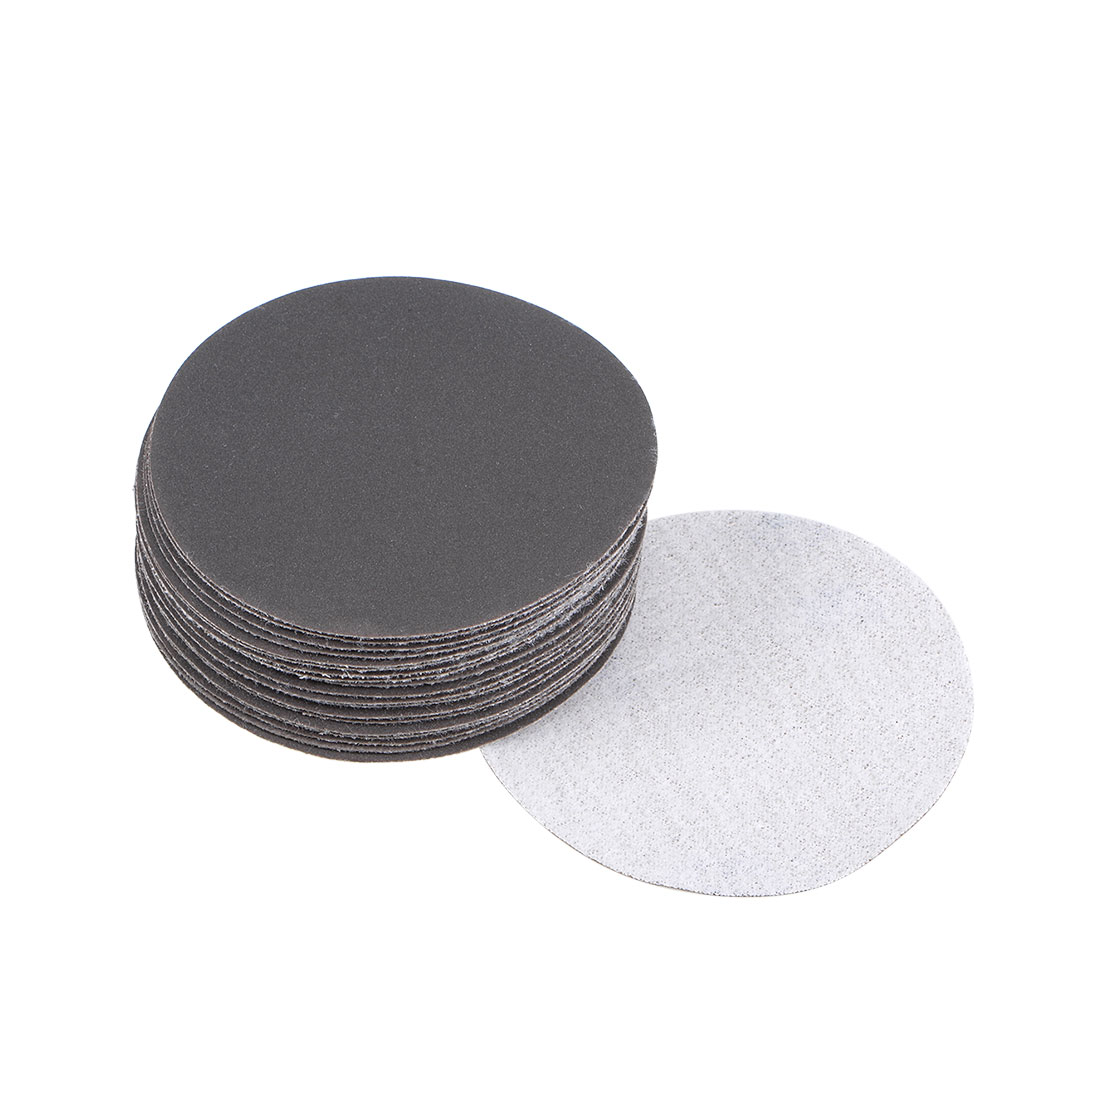 3 inch Wet Dry Discs 600 Grit Hook and Loop Sanding Disc Silicon Carbide 20pcs